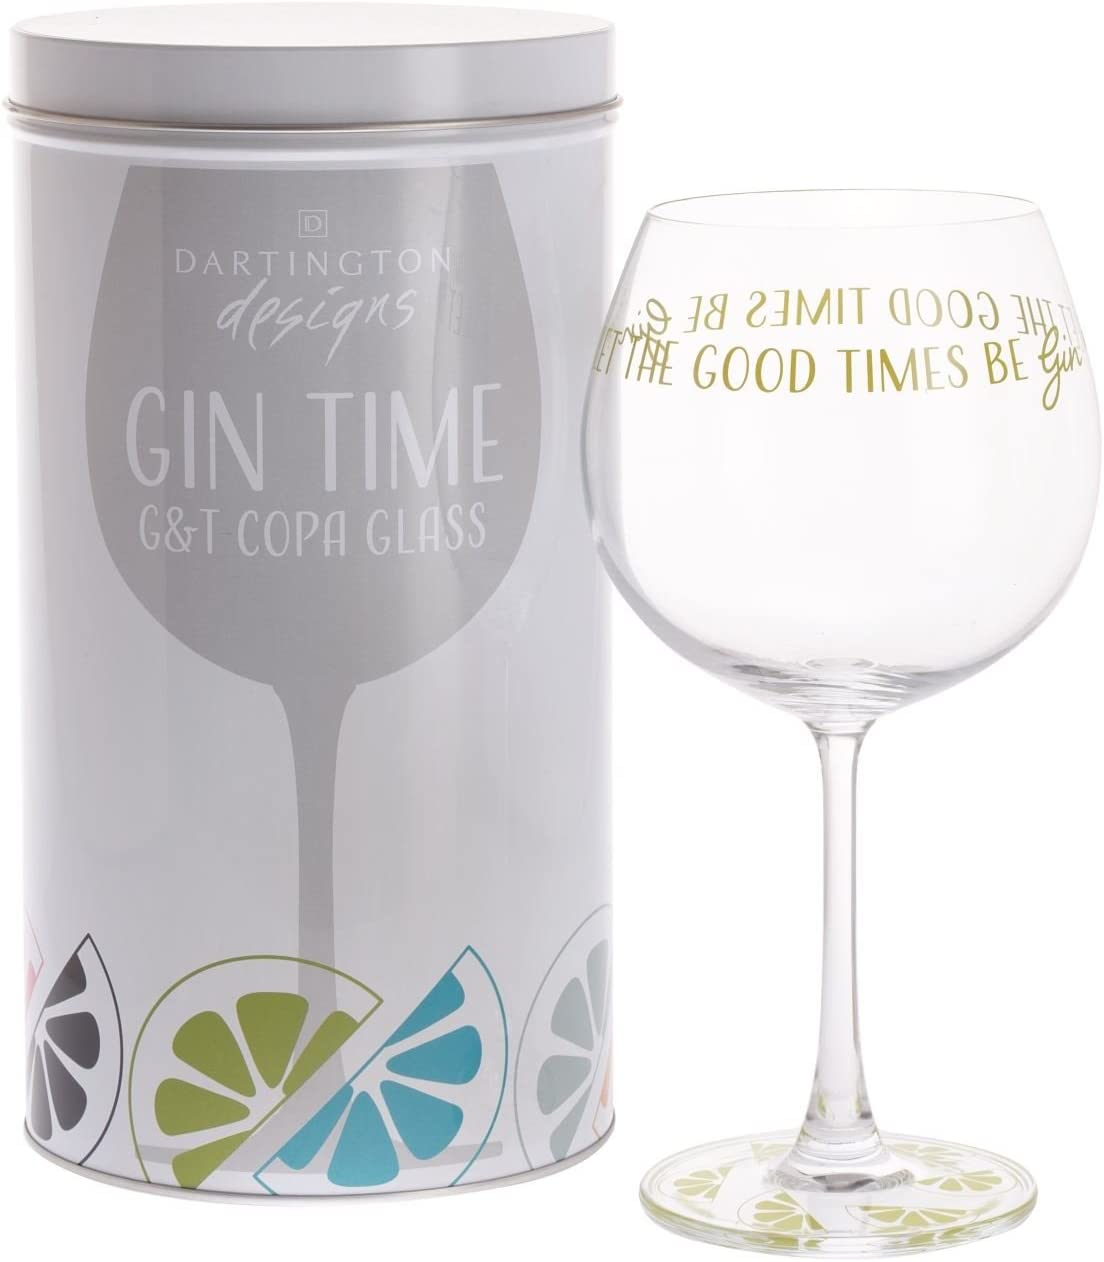 Dartington Crystal Gin Time Bicchiere per palloncino Let the good time be gin